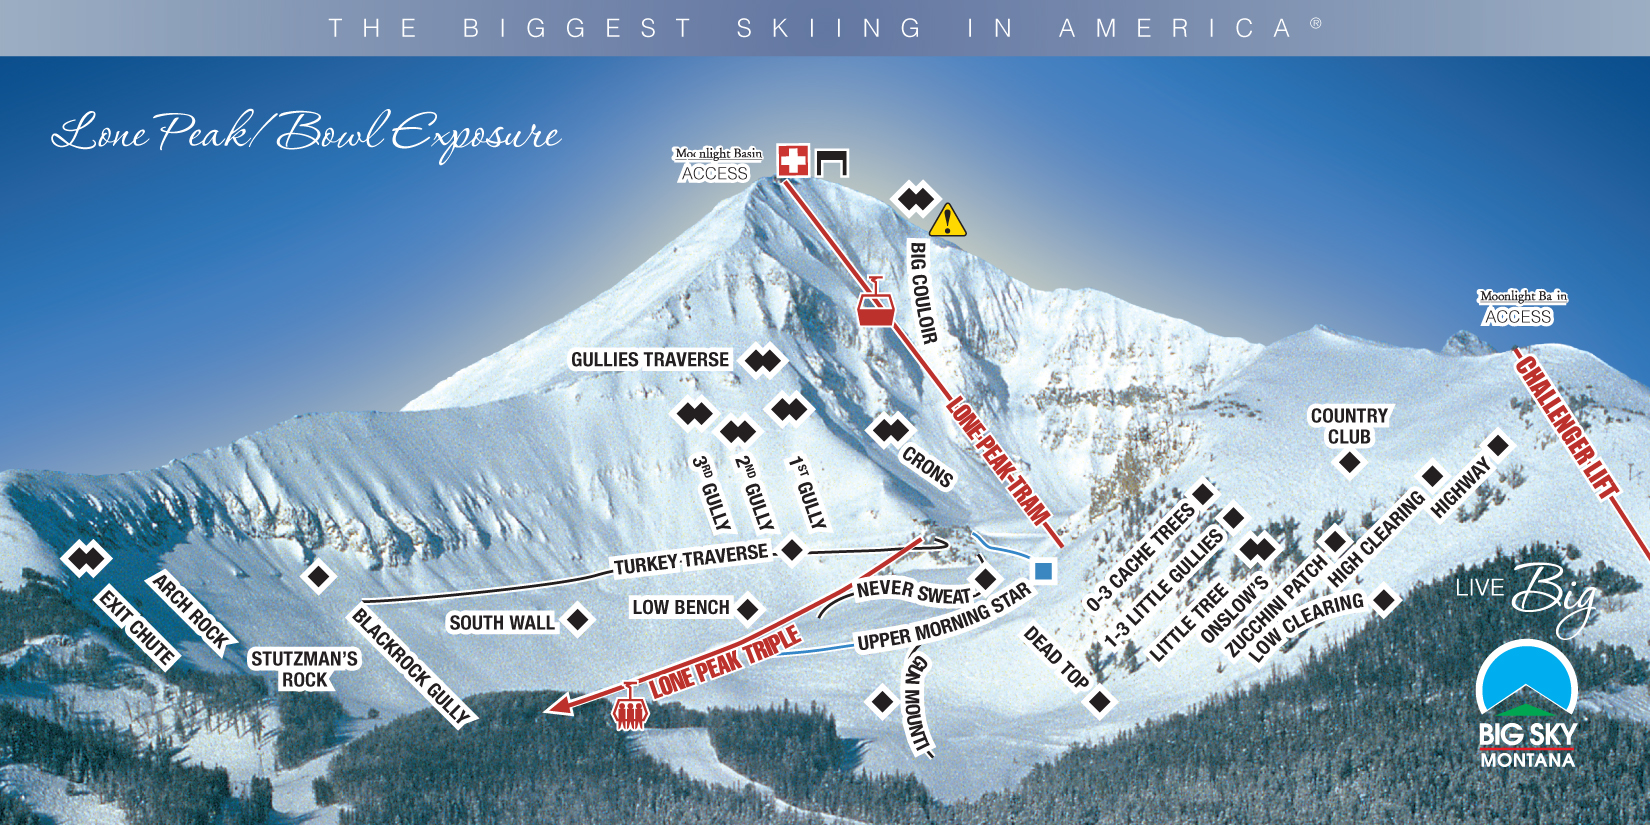 Big Sky Mt Moonlight Basin Mt Combine To Form Largest Ski Resort